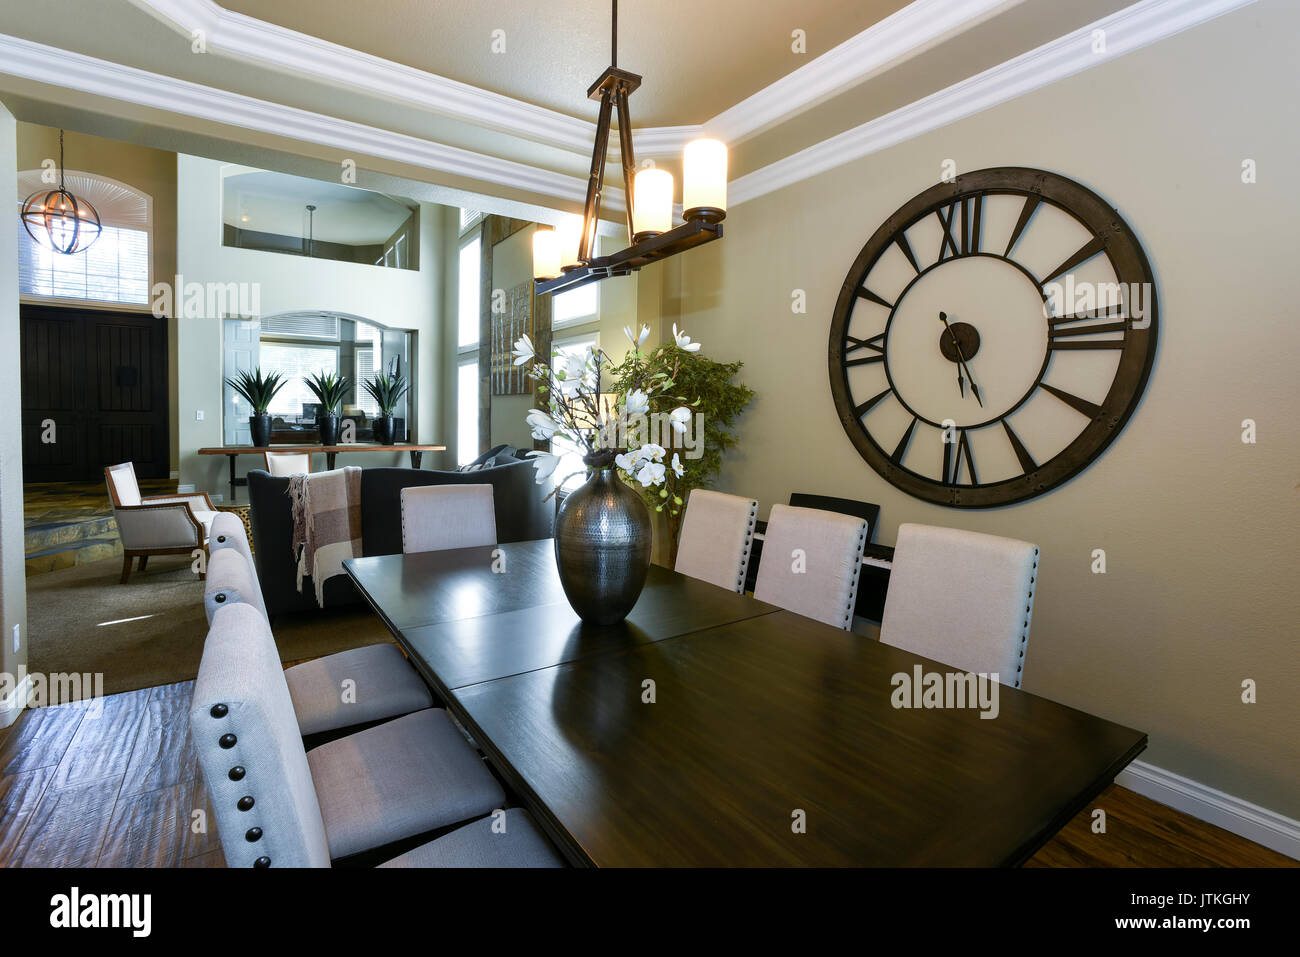 Residential Dining Room Home Interior - Stock Image